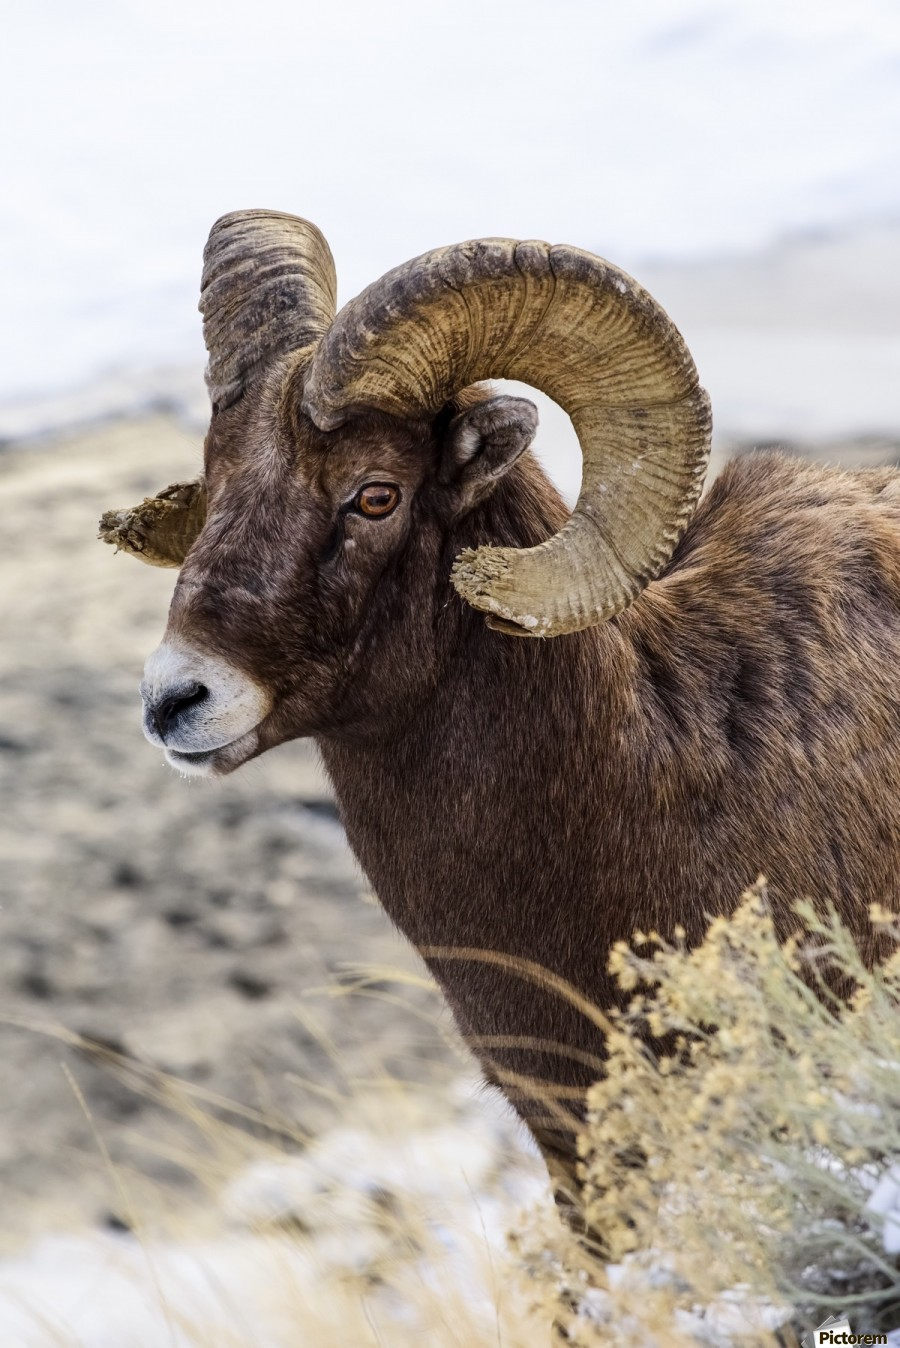 Close up of Bighorn ram (ovis canadensis) with broomed (splintered) horn tips resulting from butting heads with other rams, Shoshone National Forest; Wyoming, United States of America  Print